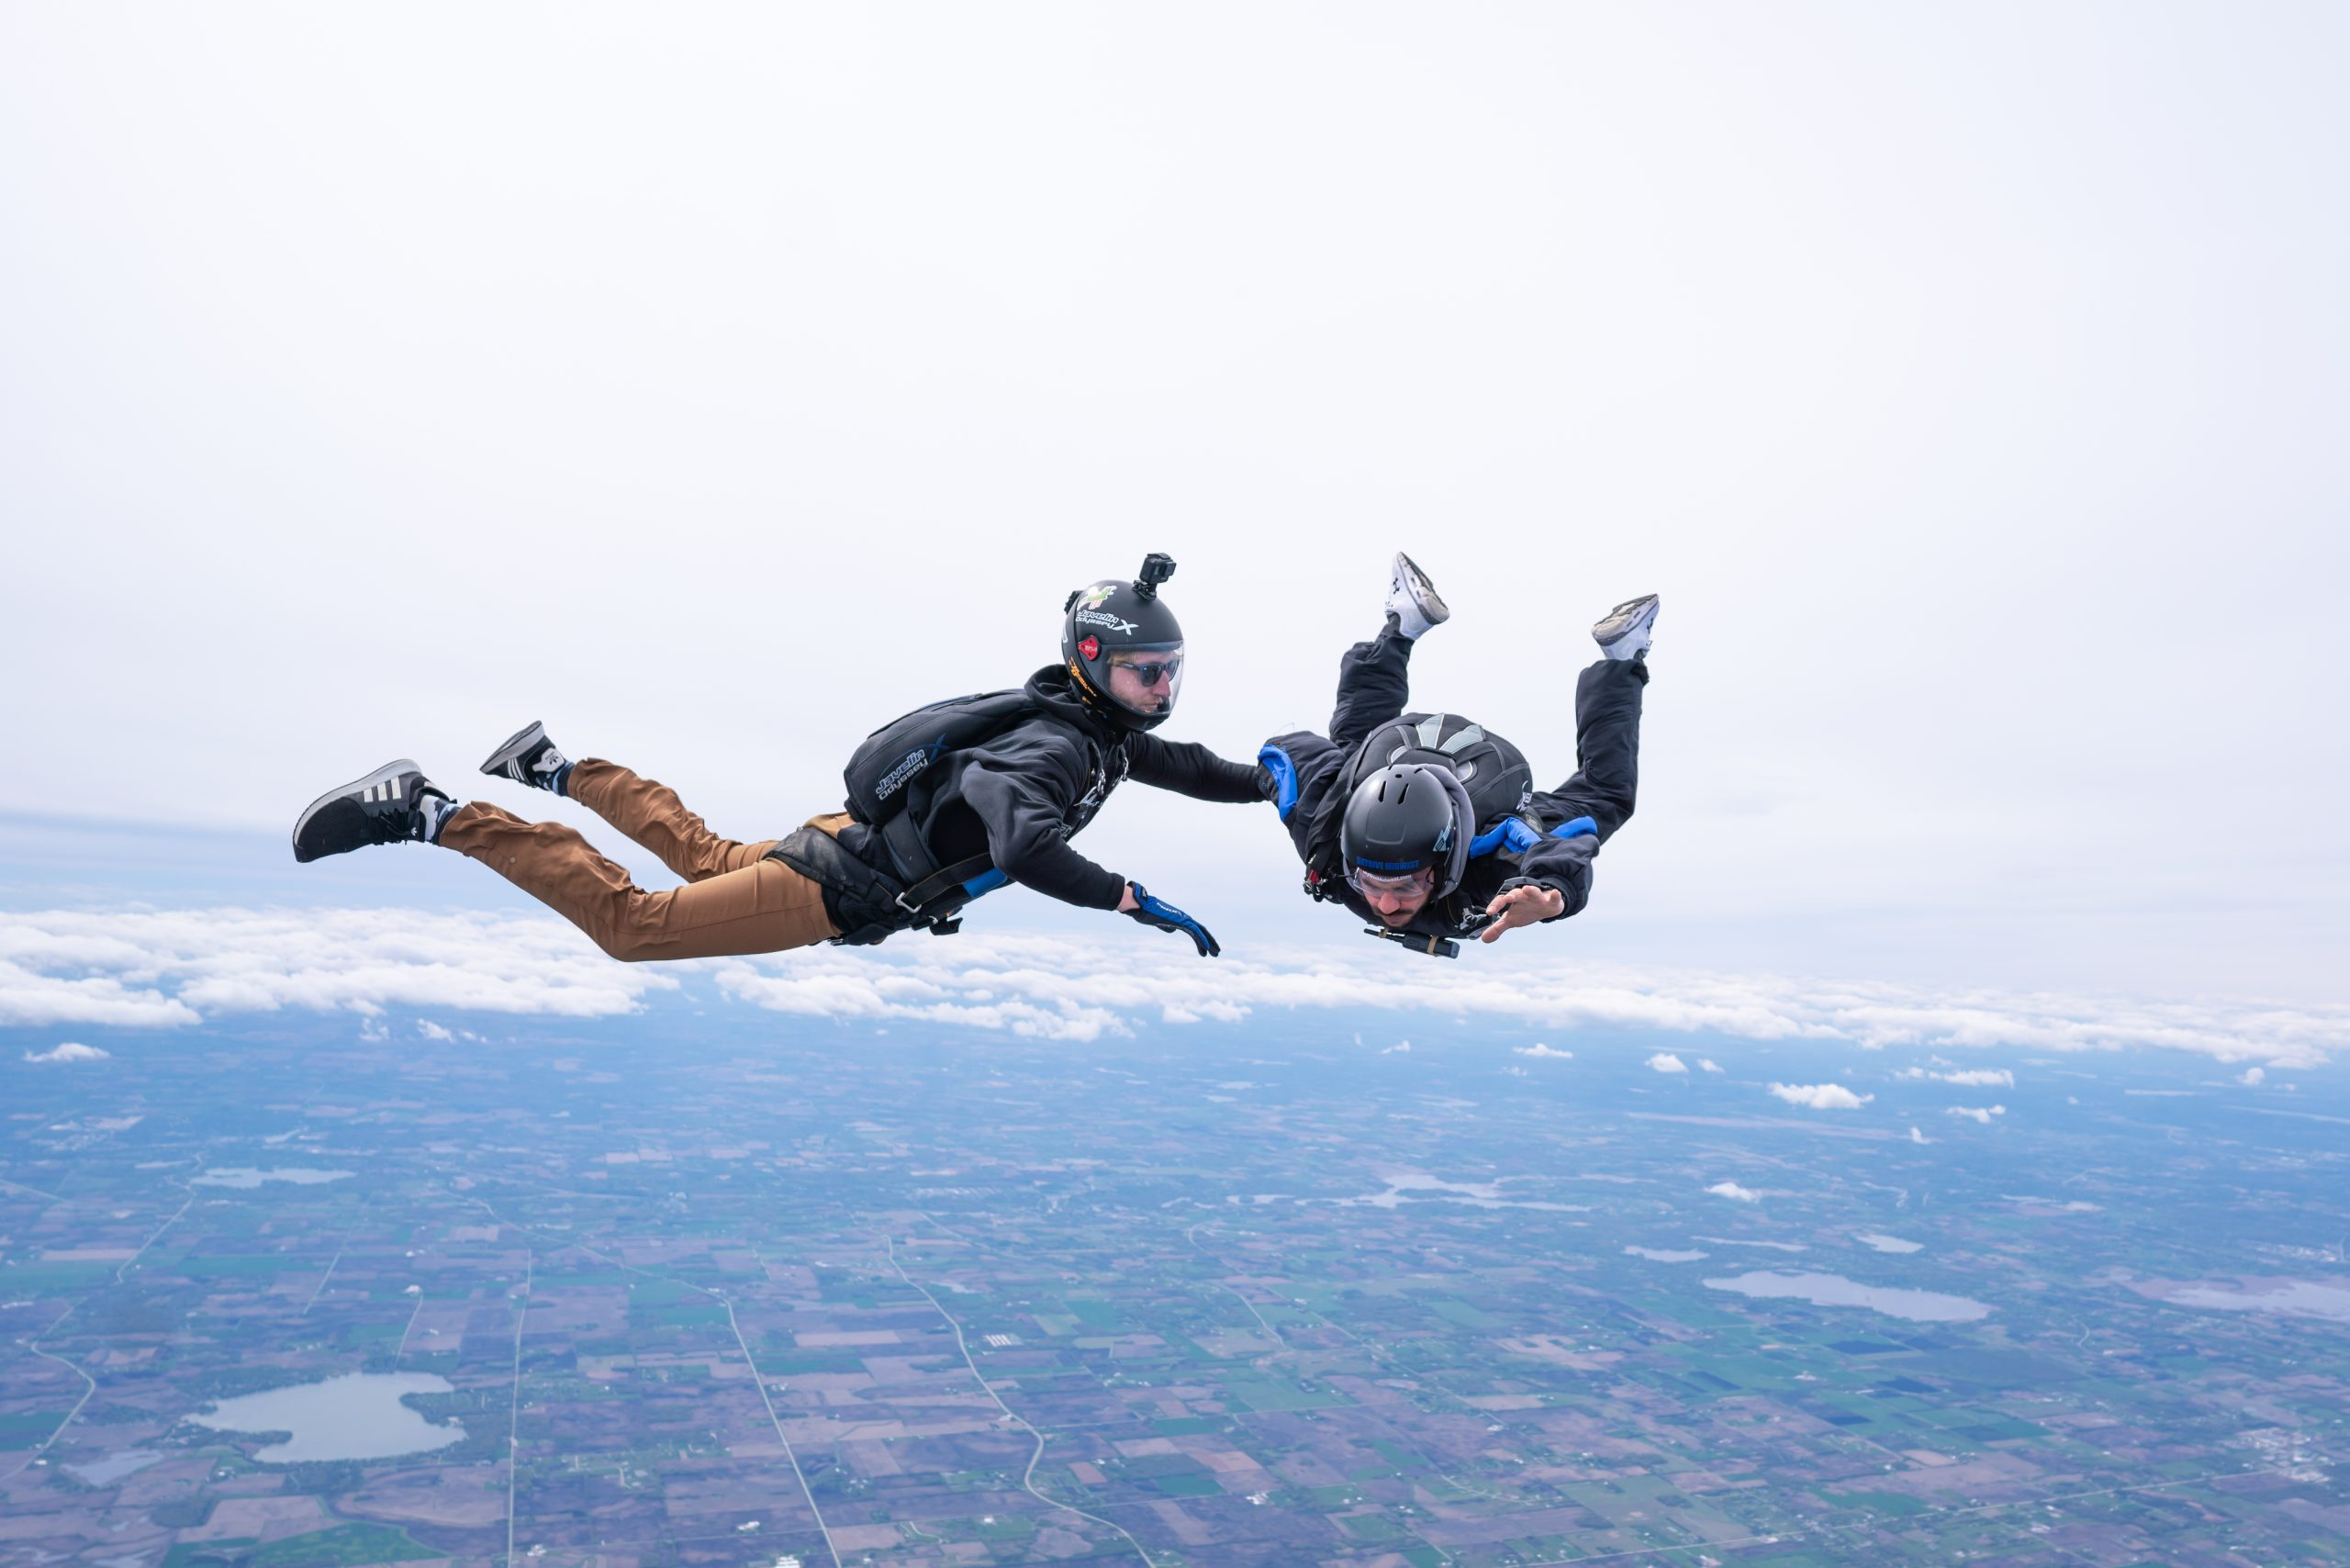 accelerated free fall solo skydivers